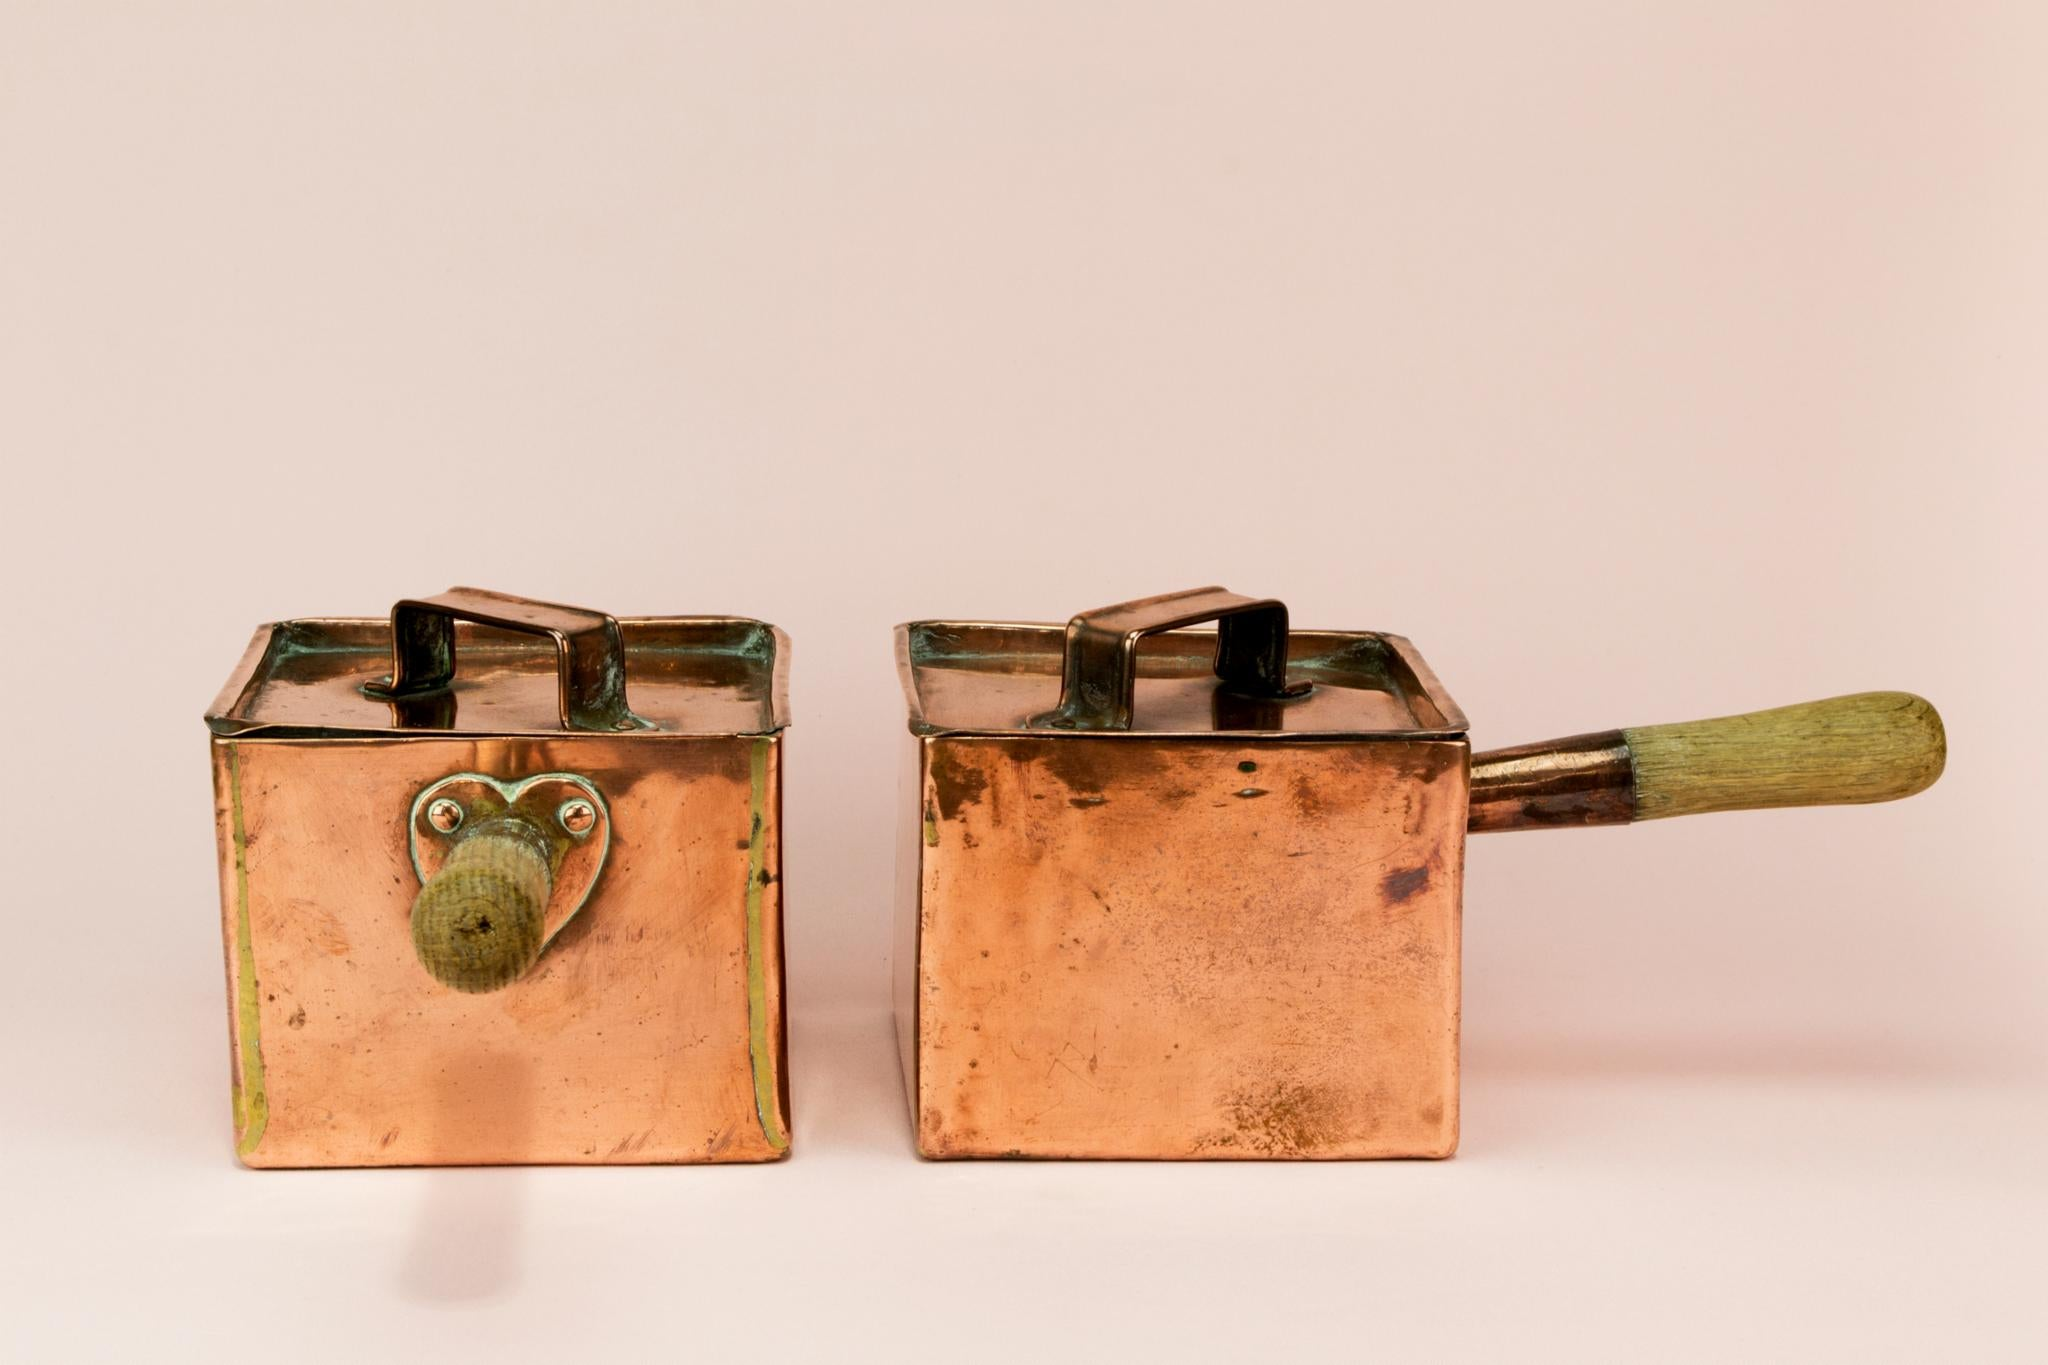 2 Arts & Crafts copper sauce pans, English early 1900s